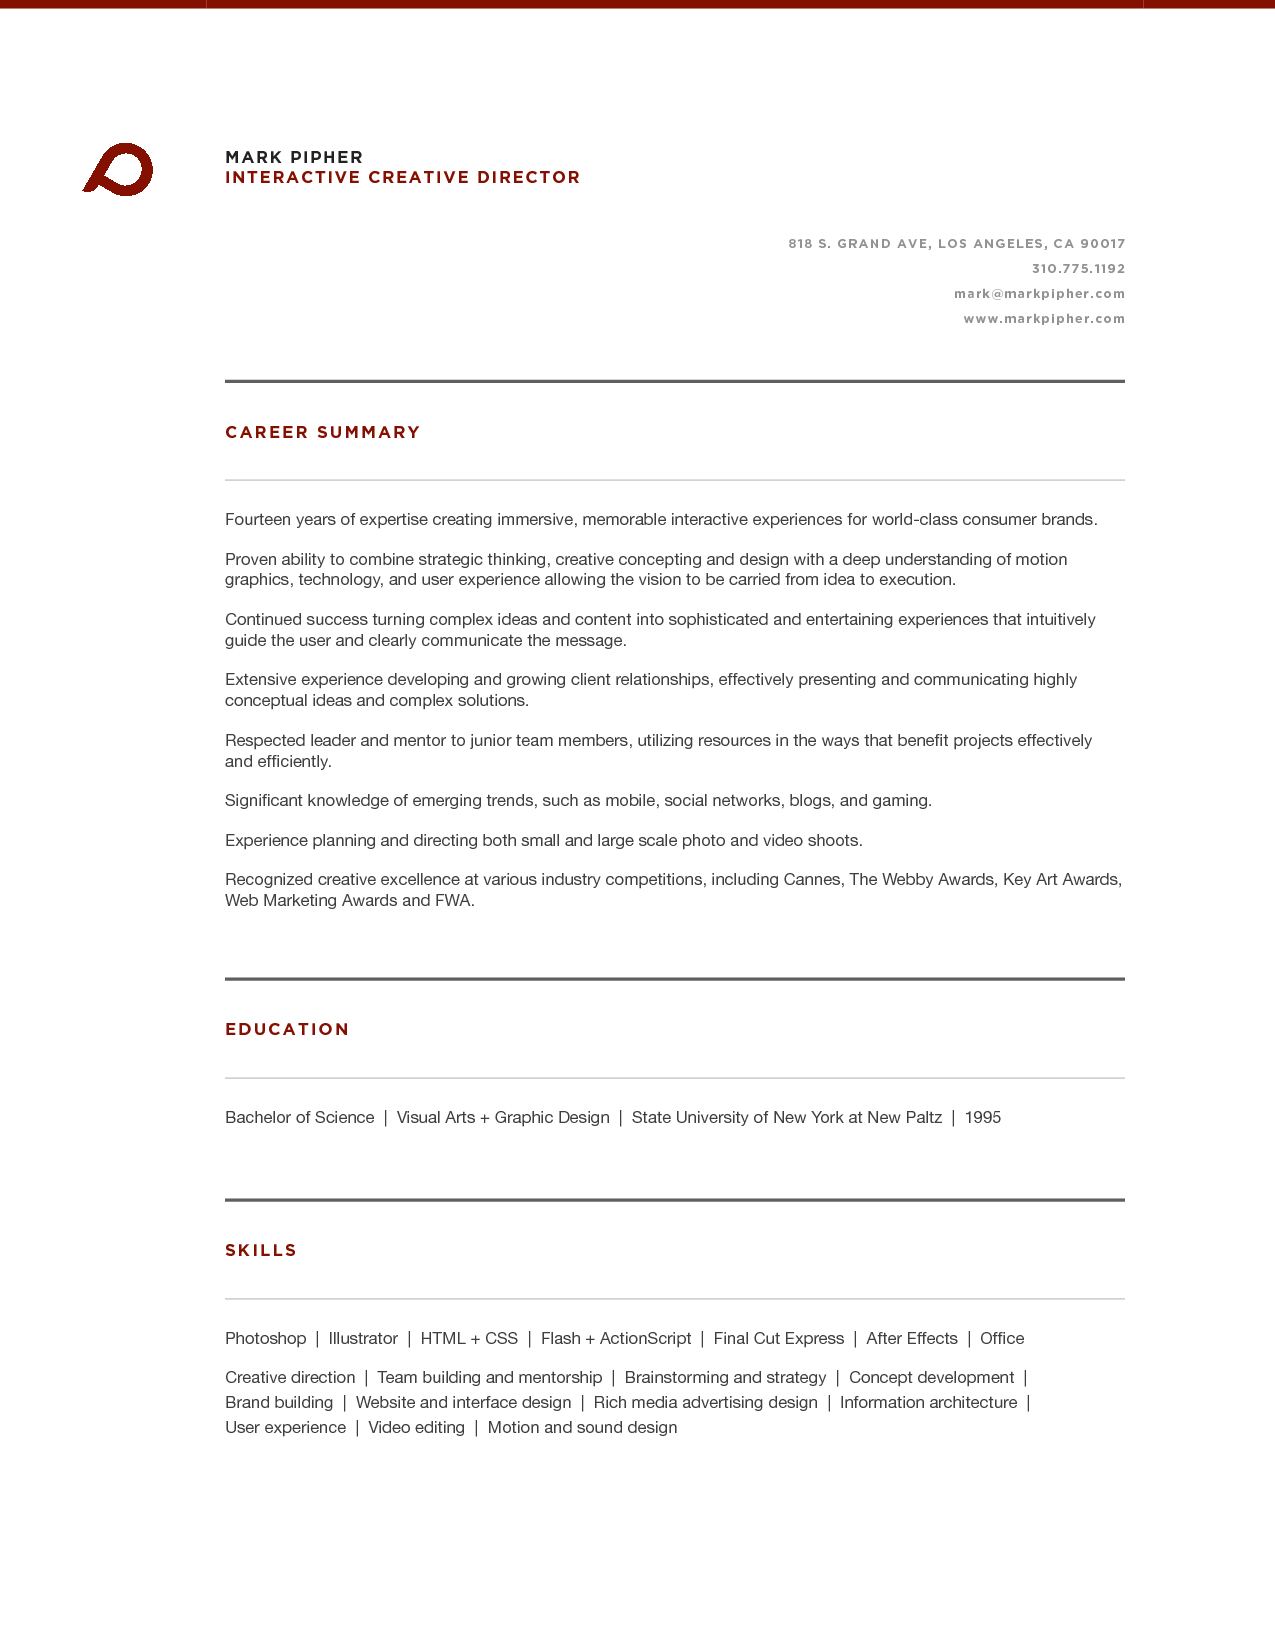 Art Director Resumes | Creative Director Resume Templates P MA R K P I P  HER IN TE